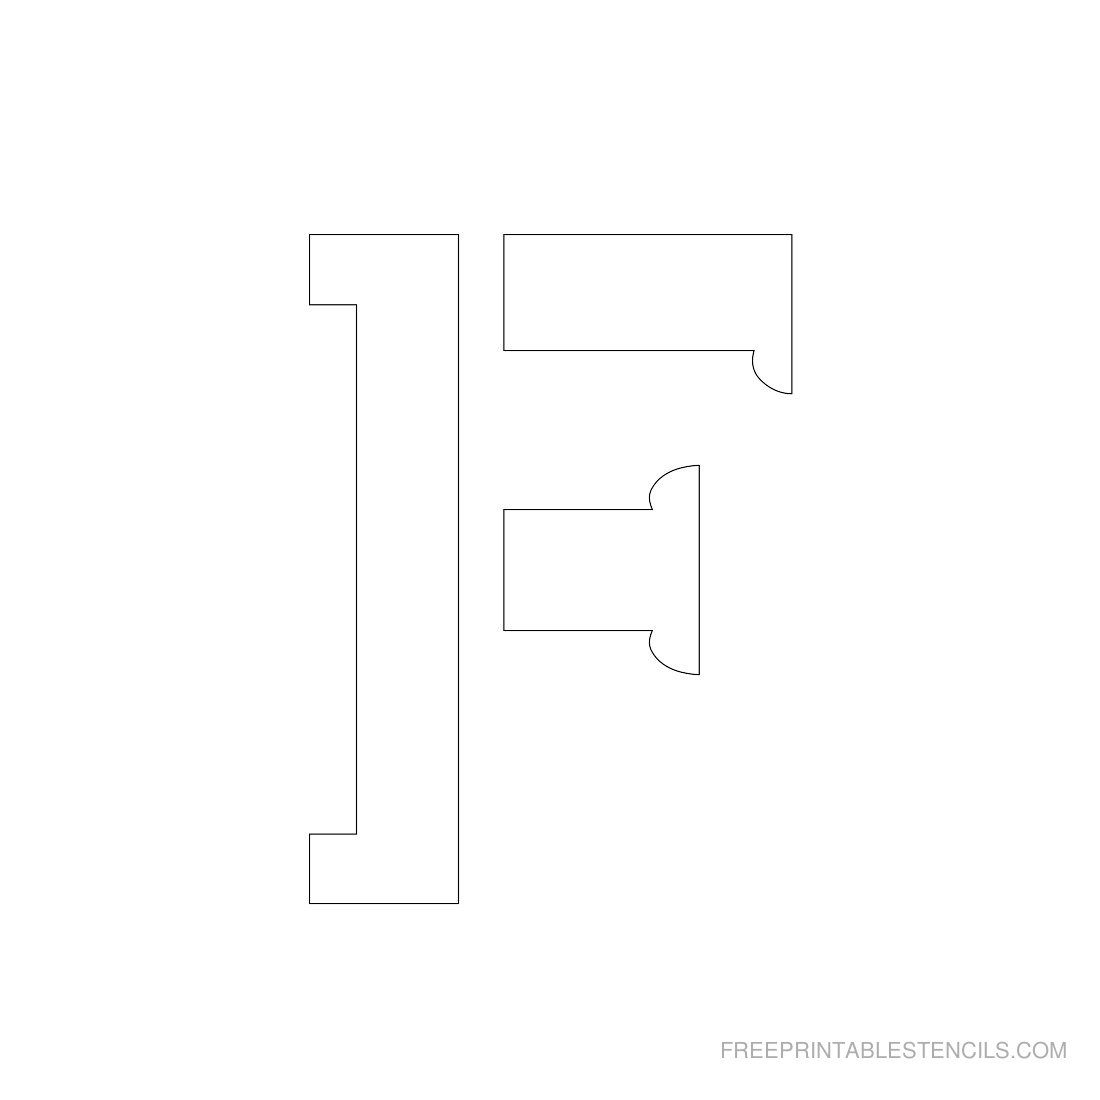 Printable 3 Inch Letter Stencils A-Z | Free Printable Stencils Com - Free Printable 10 Inch Letter Stencils